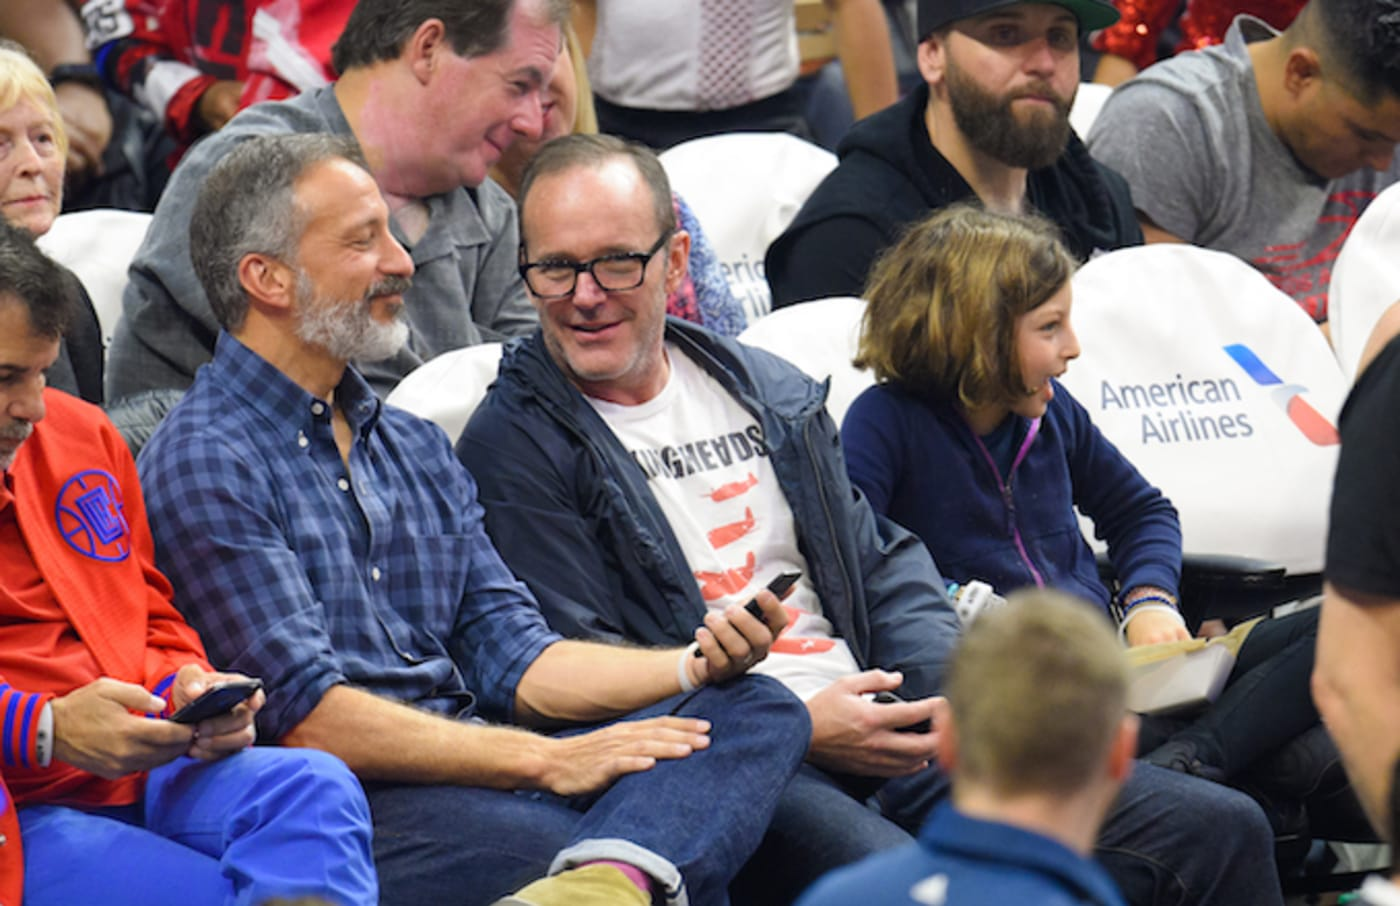 Clark Gregg attends a basketball game between the Utah Jazz and the Los Angeles Clippers.